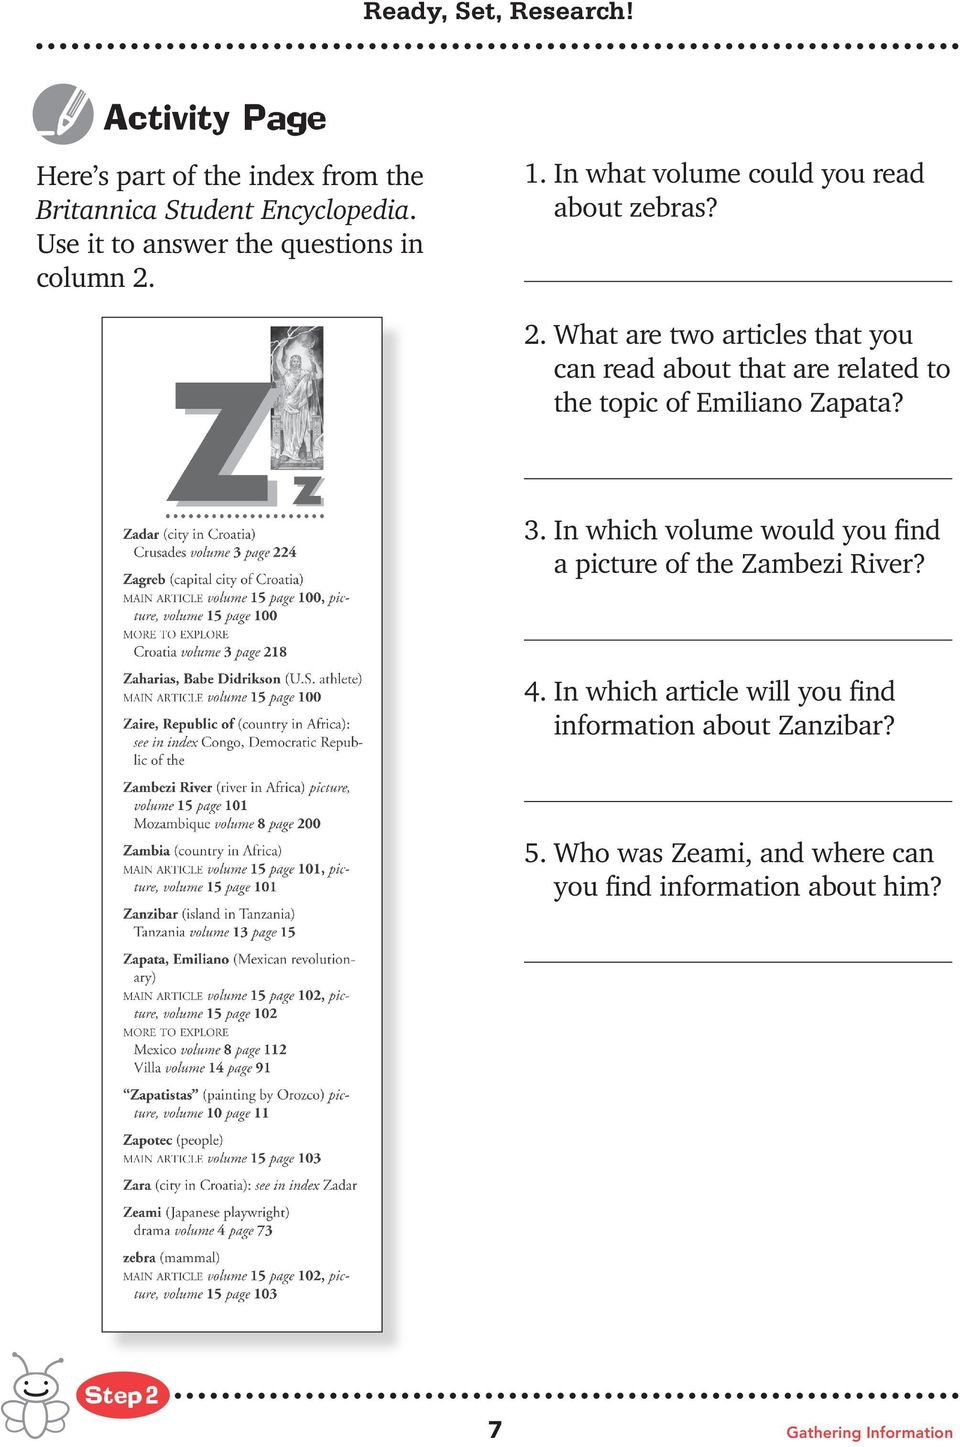 What are two articles that you can read about that are related to the topic of Emiliano Zapata? 3.